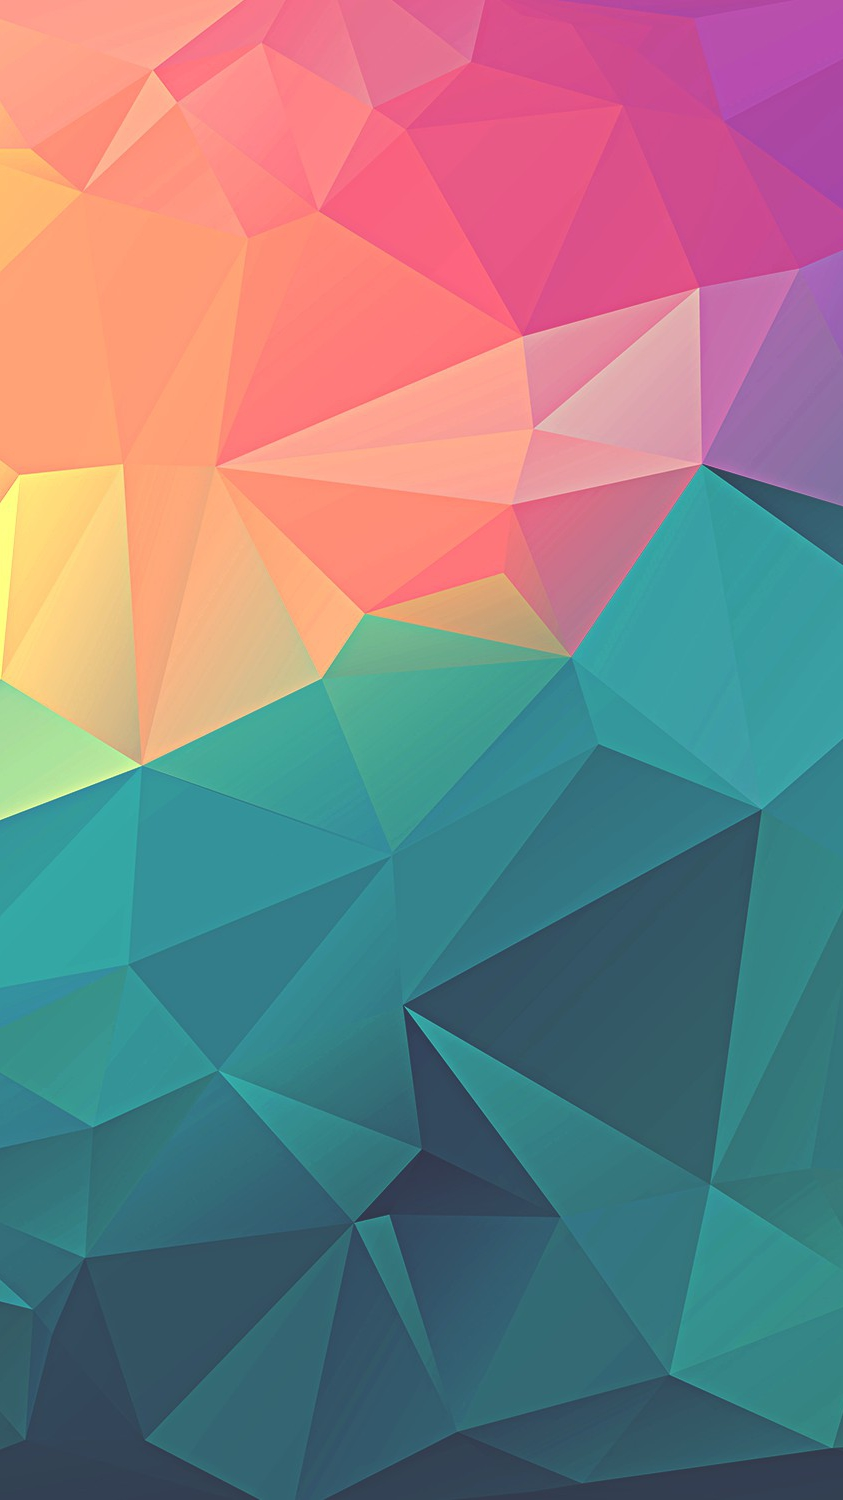 Free Colorful Geometric Wallpaper: Colorful-Polygon-Geometric-Art-iPhone-Wallpaper